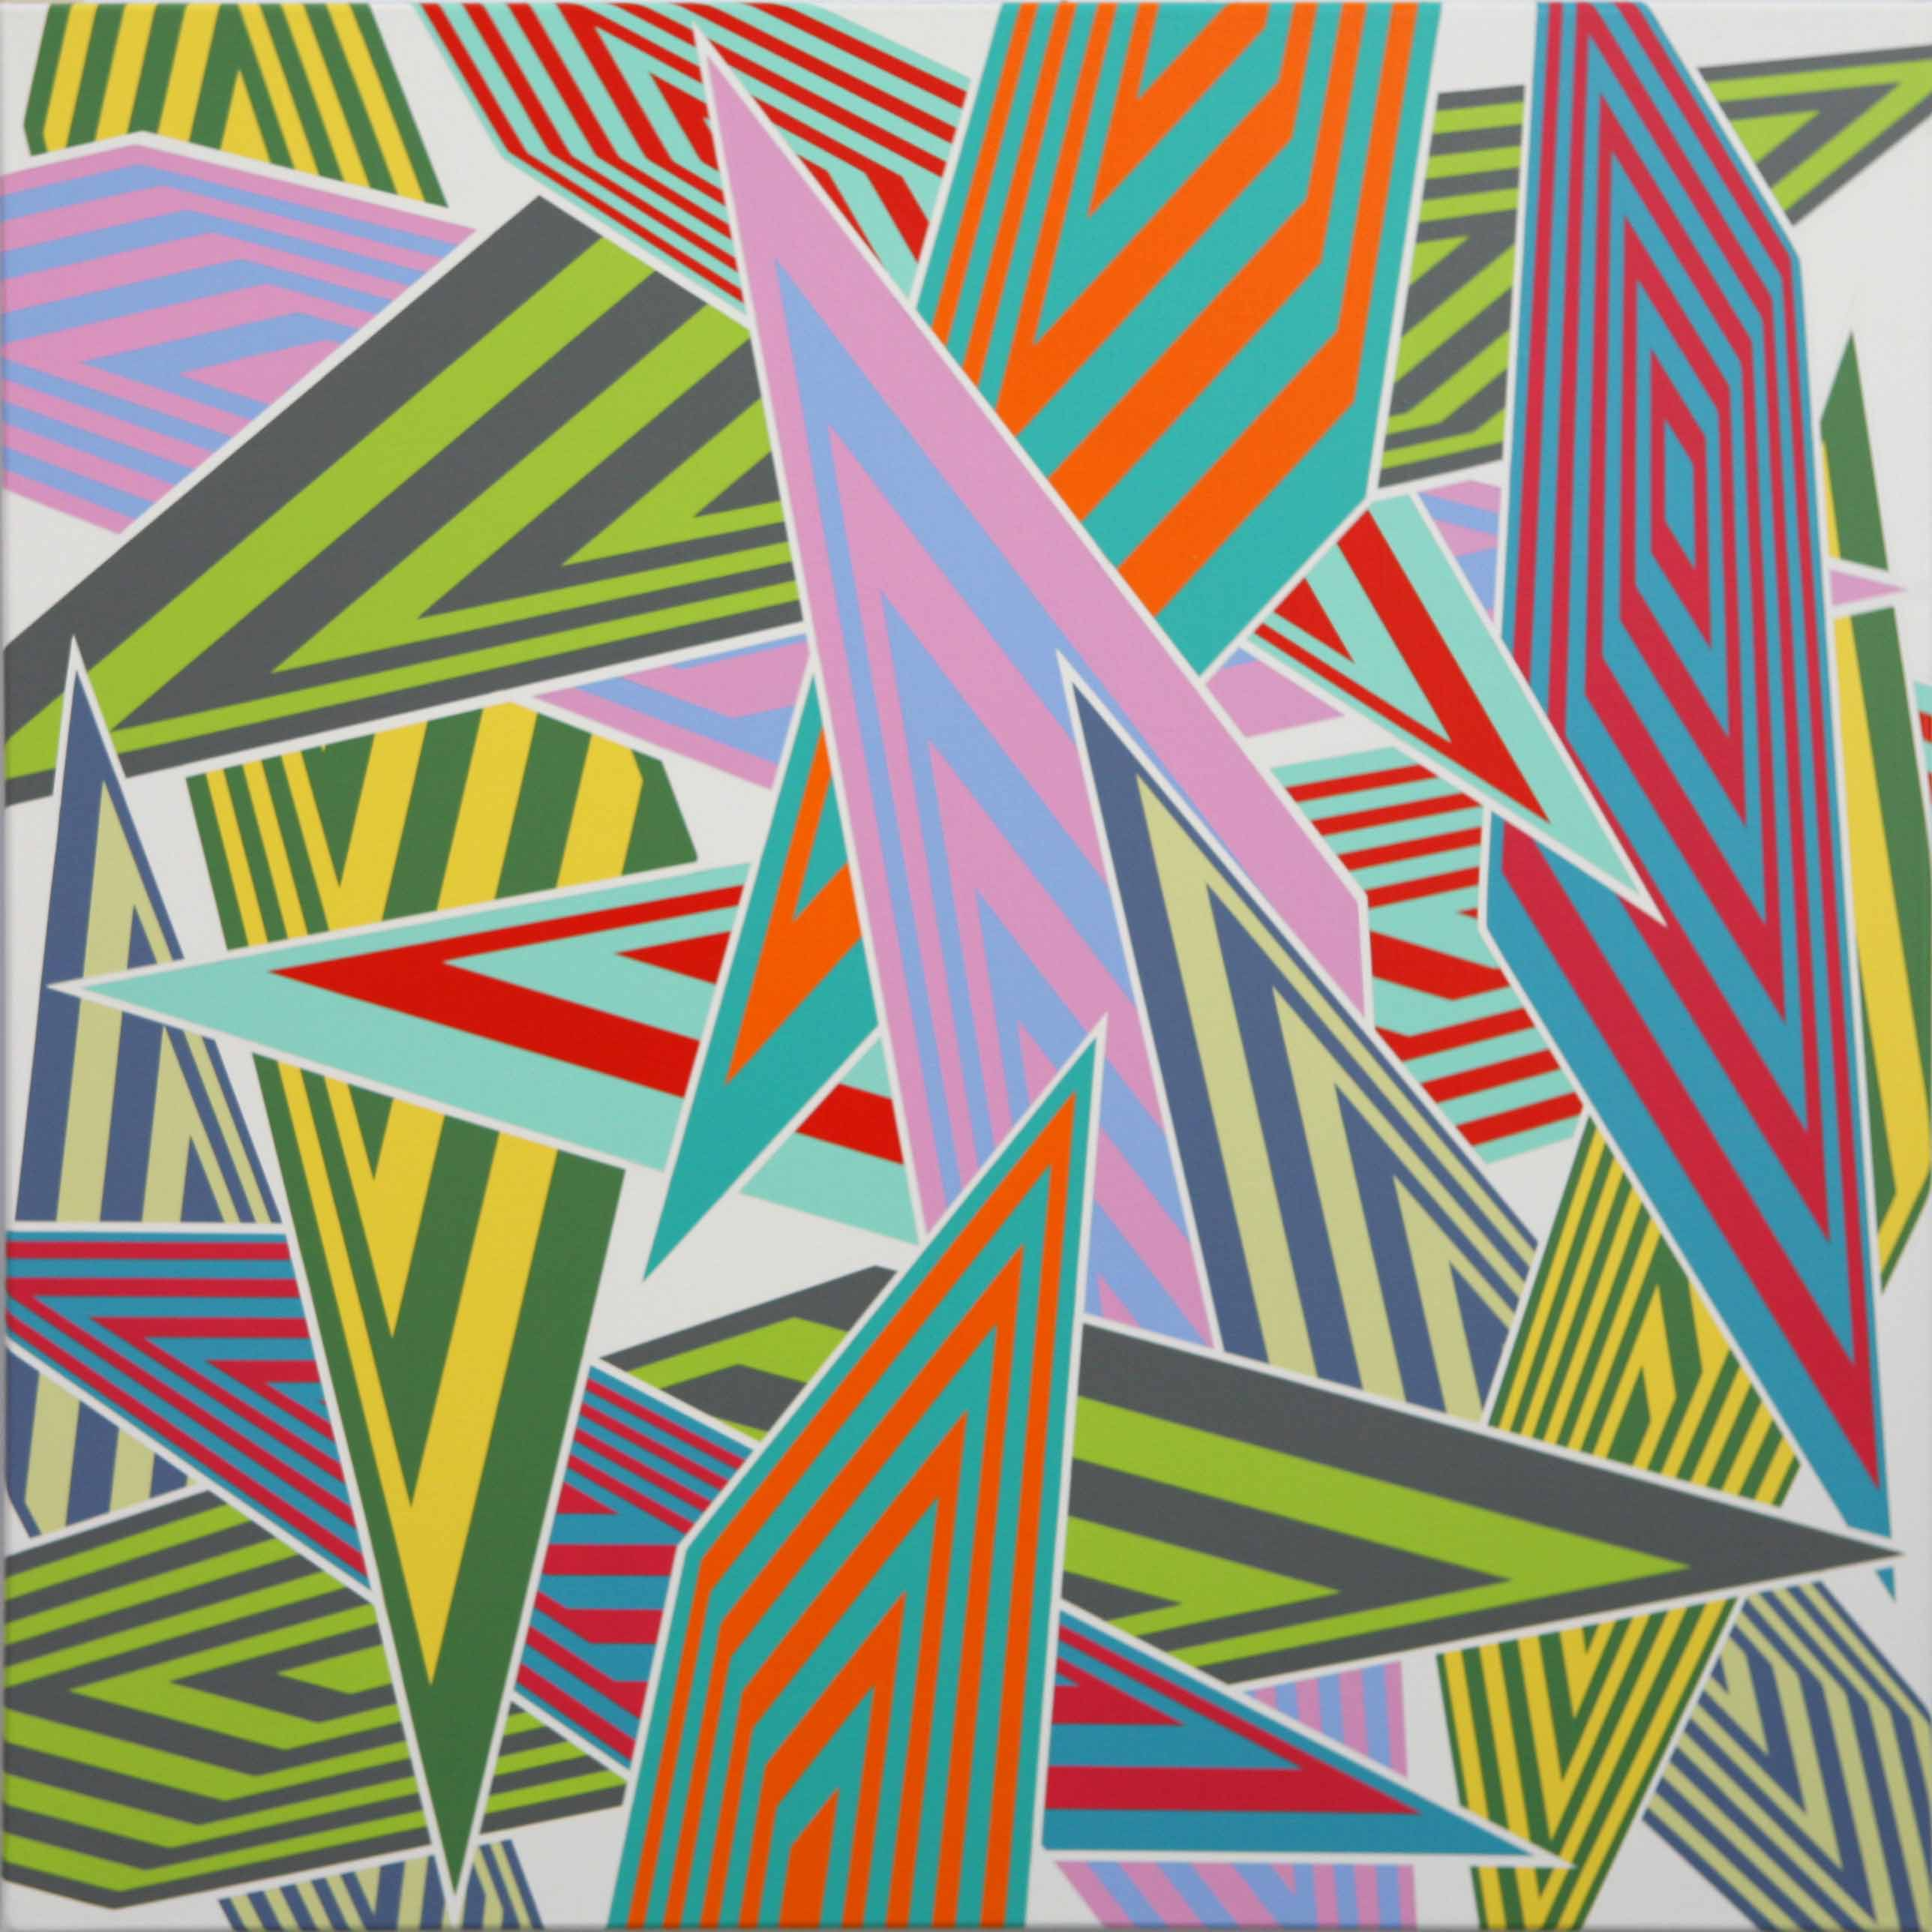 Sara Hughes in Perception: Colour/Line/Pattern at the Arvada Centre, Colorado